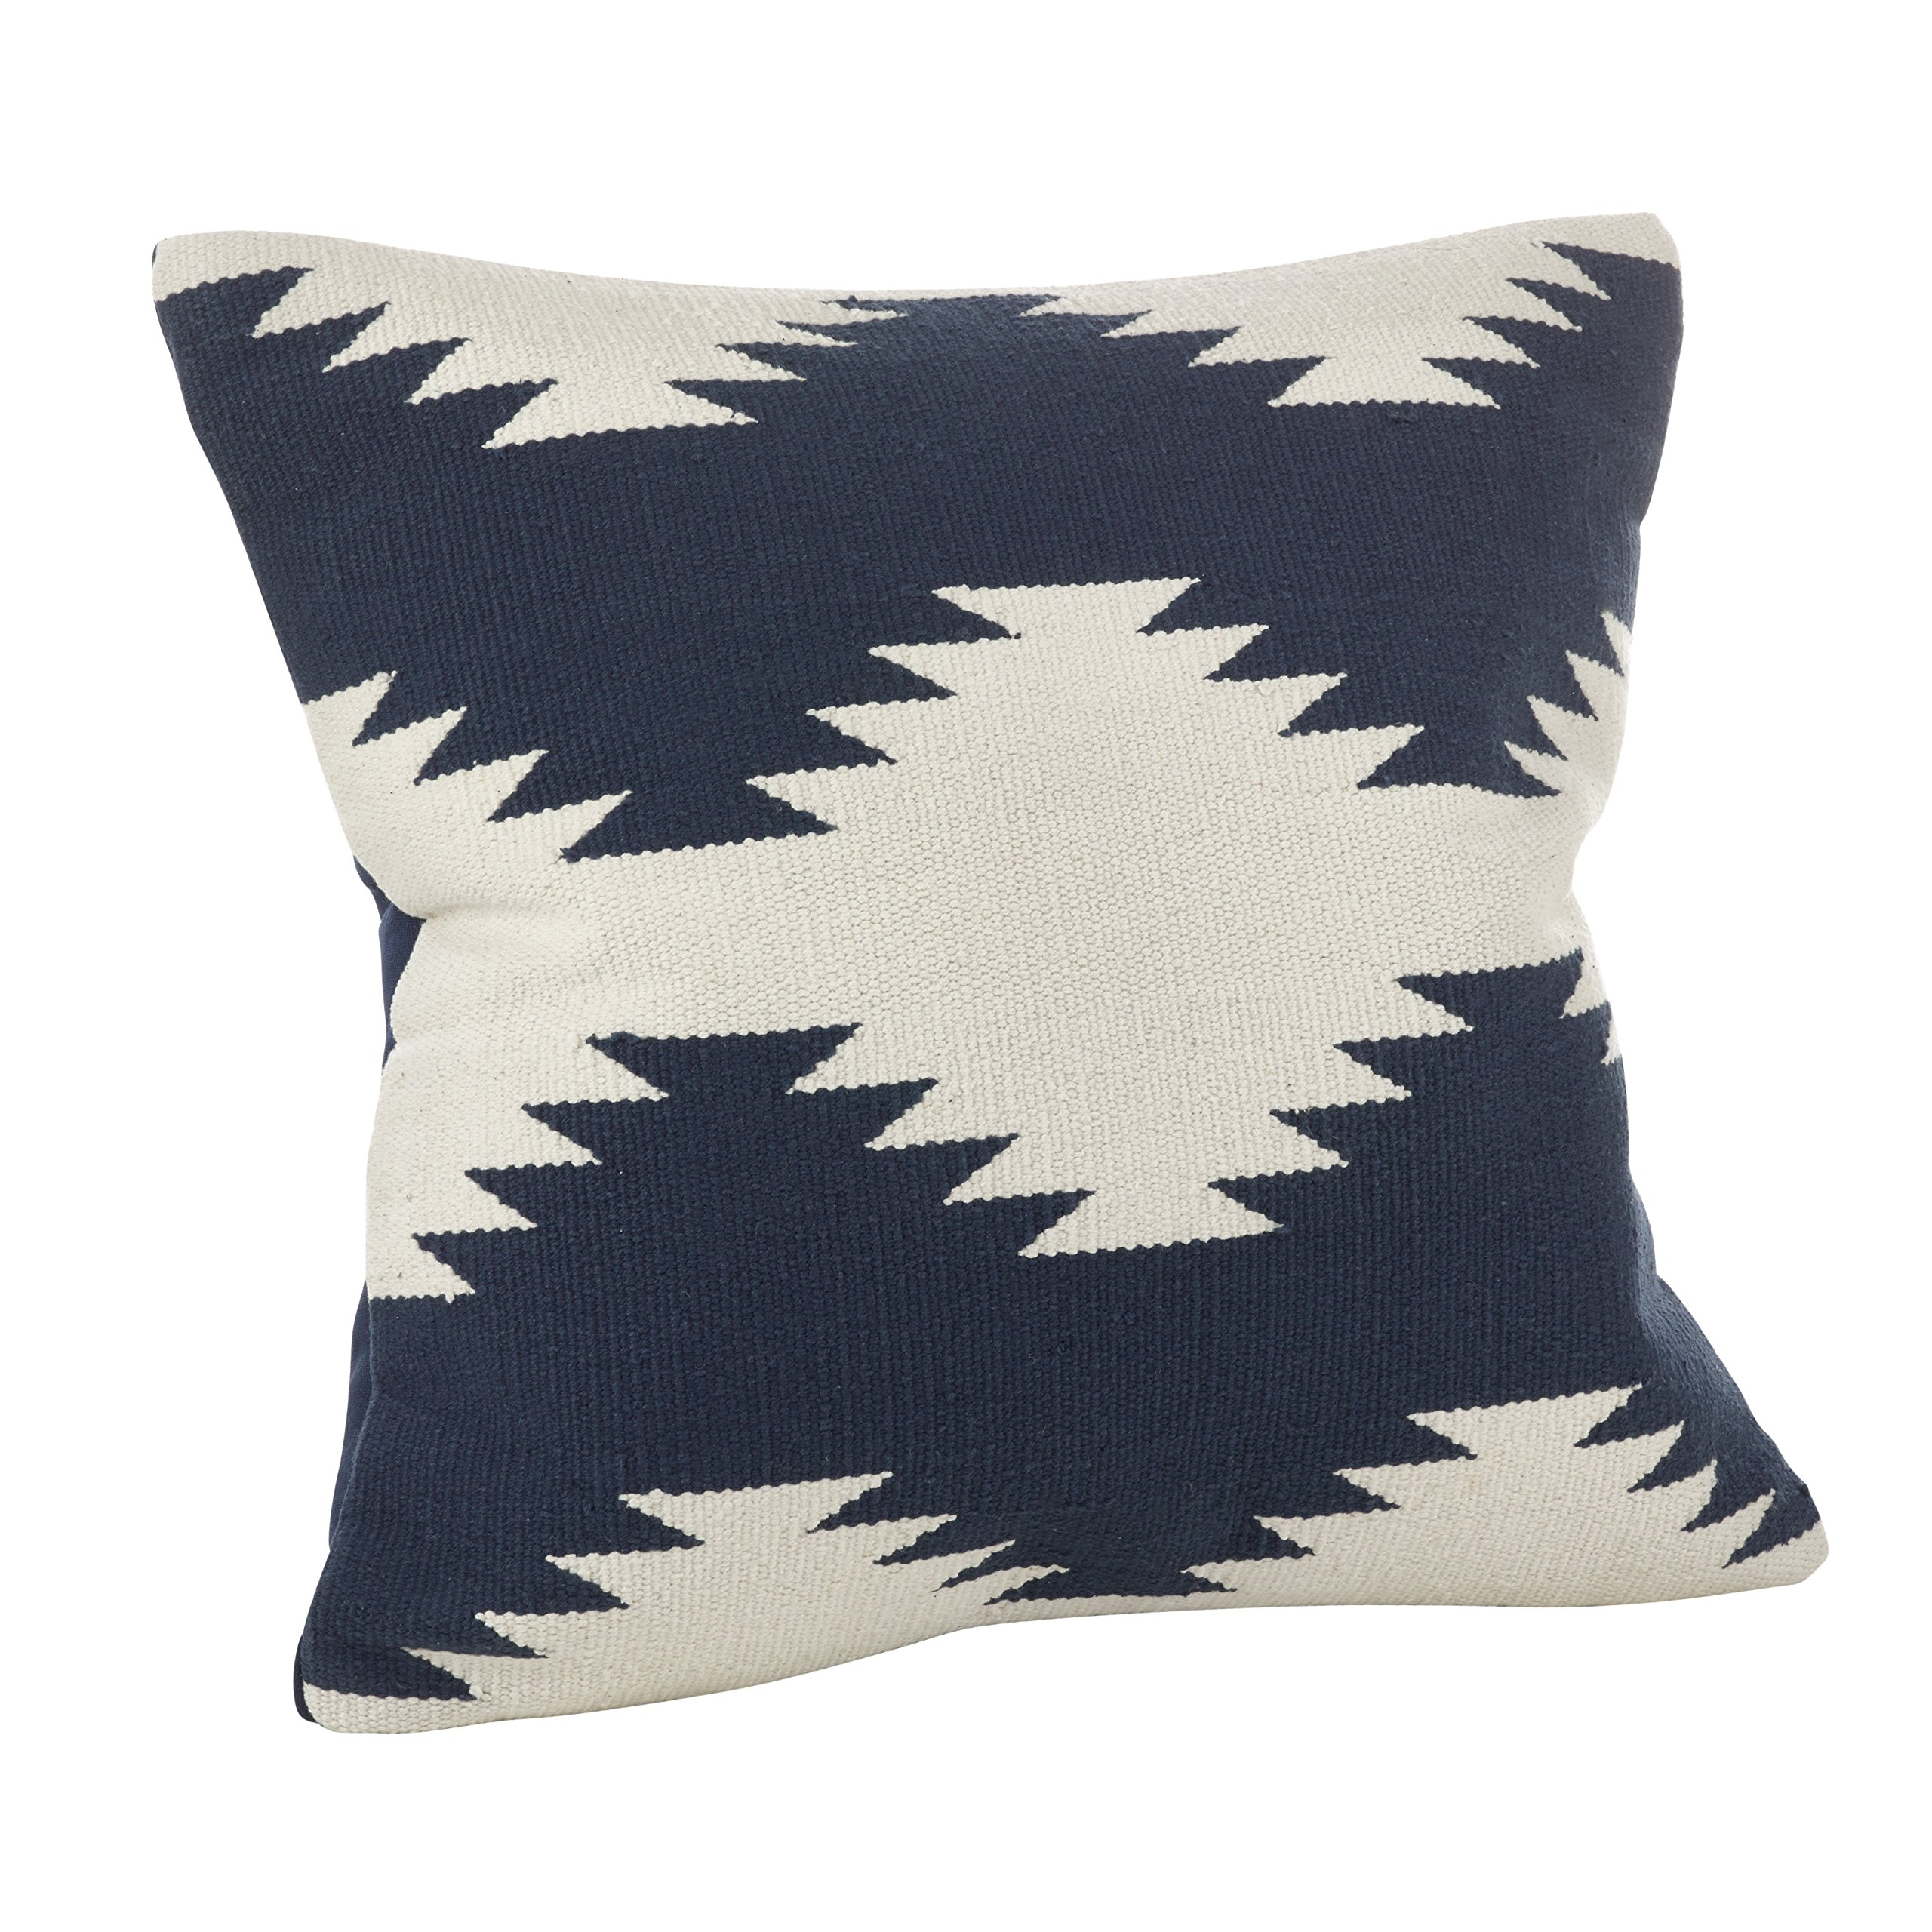 SARO LIFESTYLE Collection Kilim Design Down Filled Throw Pillow, 20'', Navy Blue